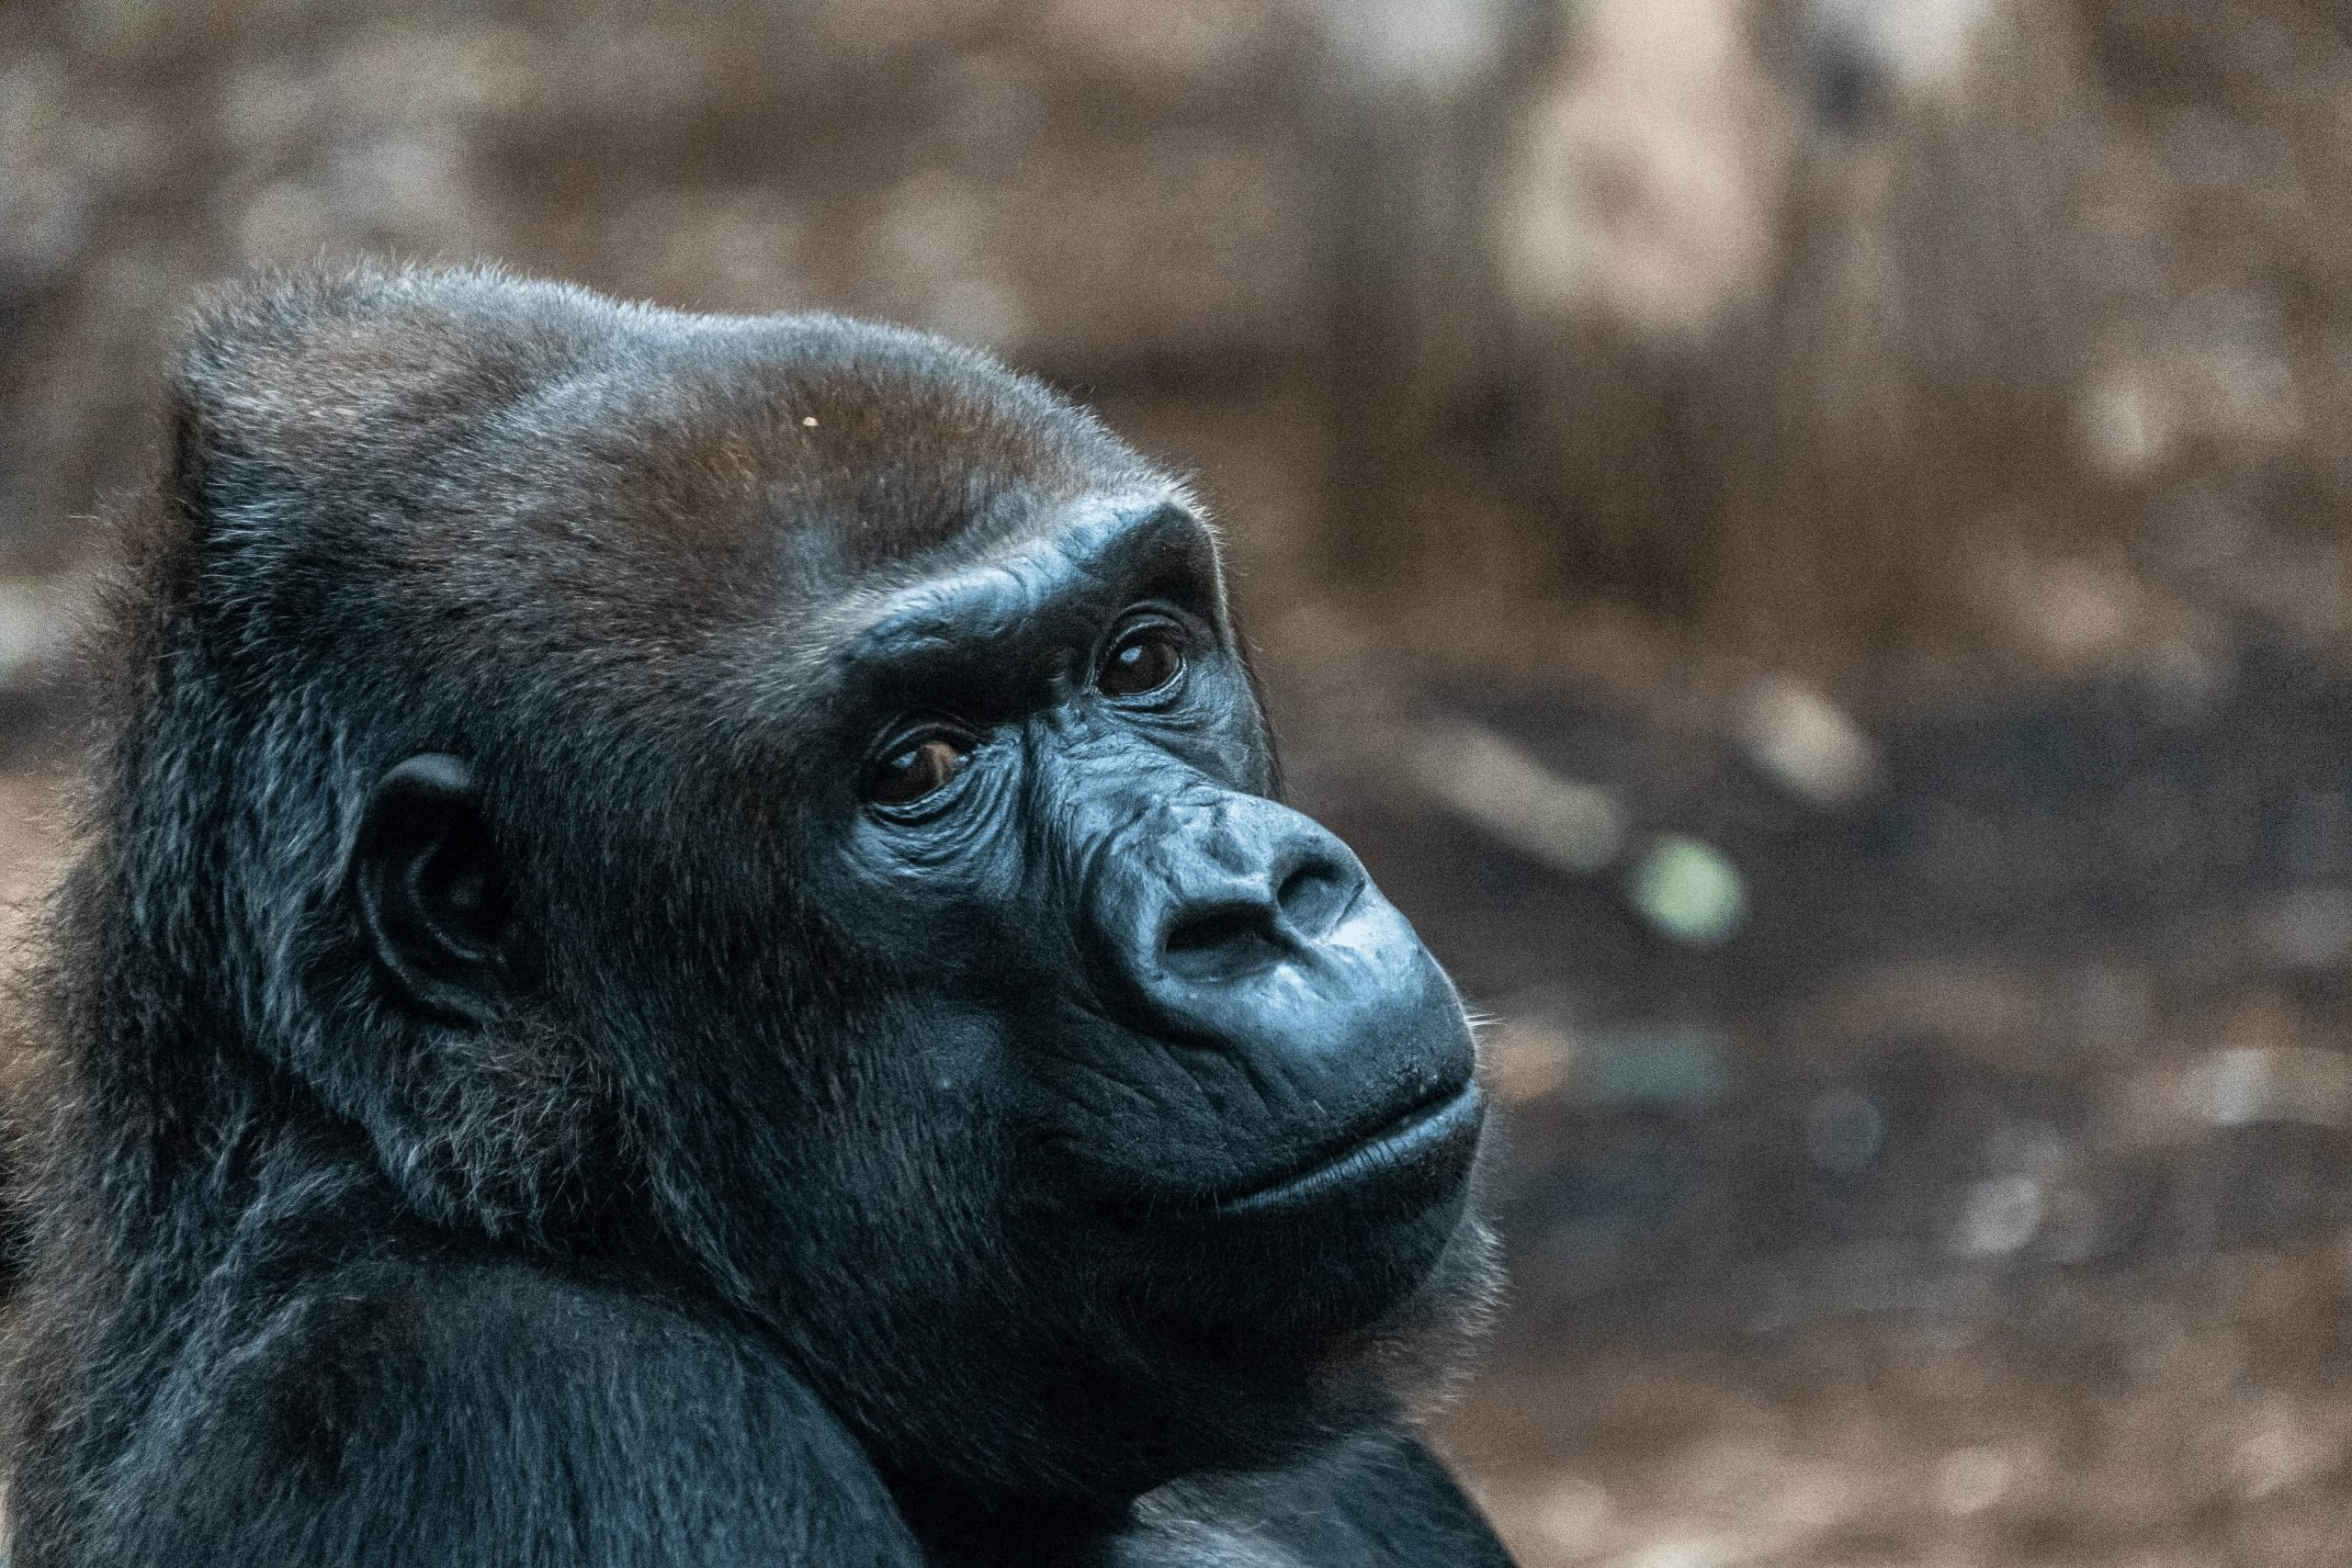 how much dna do we share with gorillas